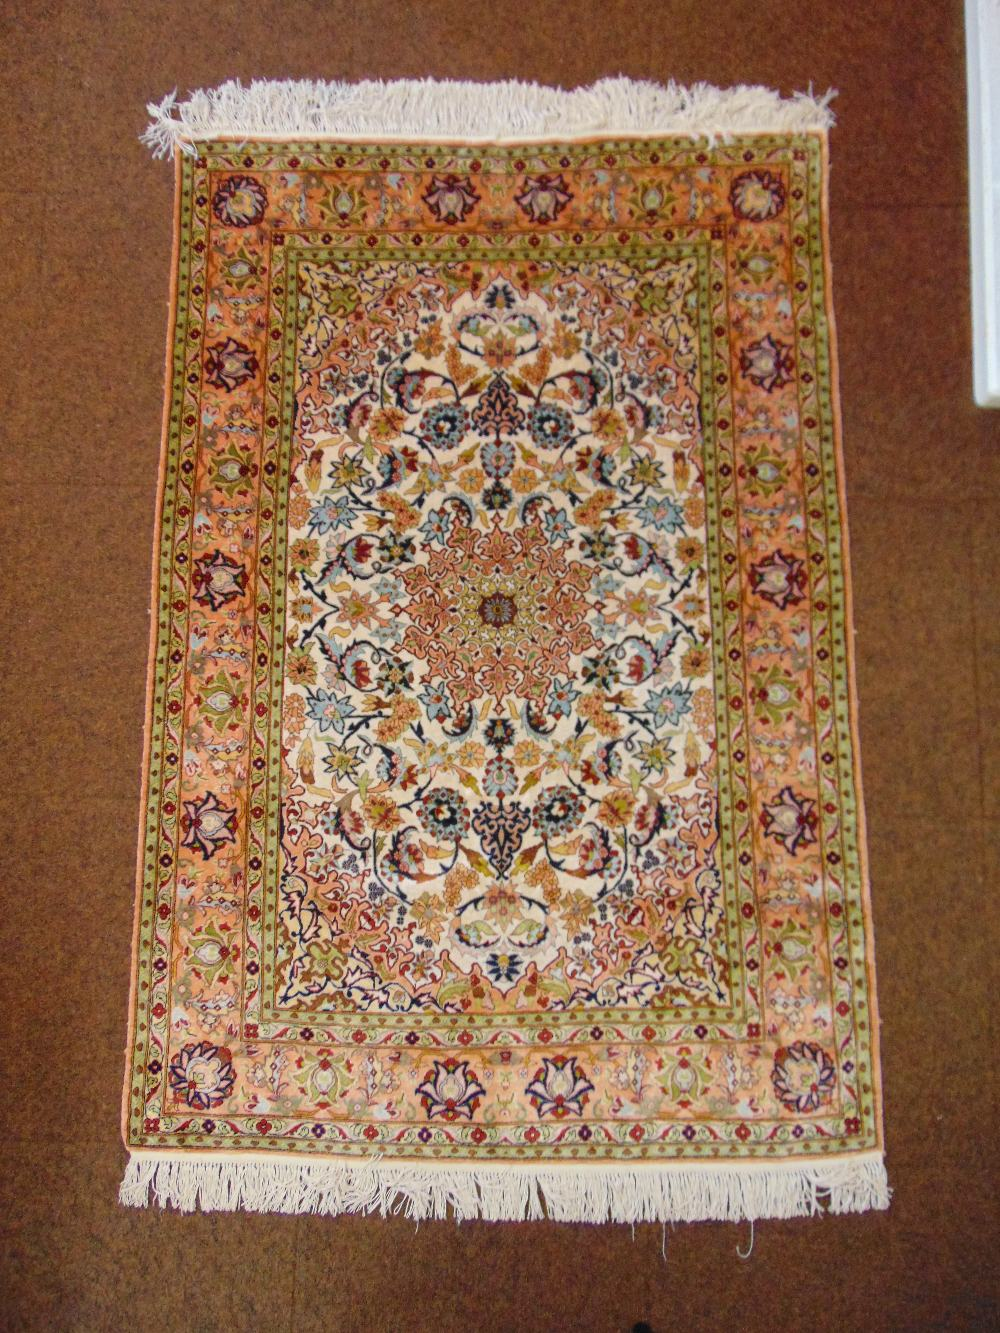 Lot 45 - A Persian silk and wool carpet, brown green and blue with stylised natural and geometric forms